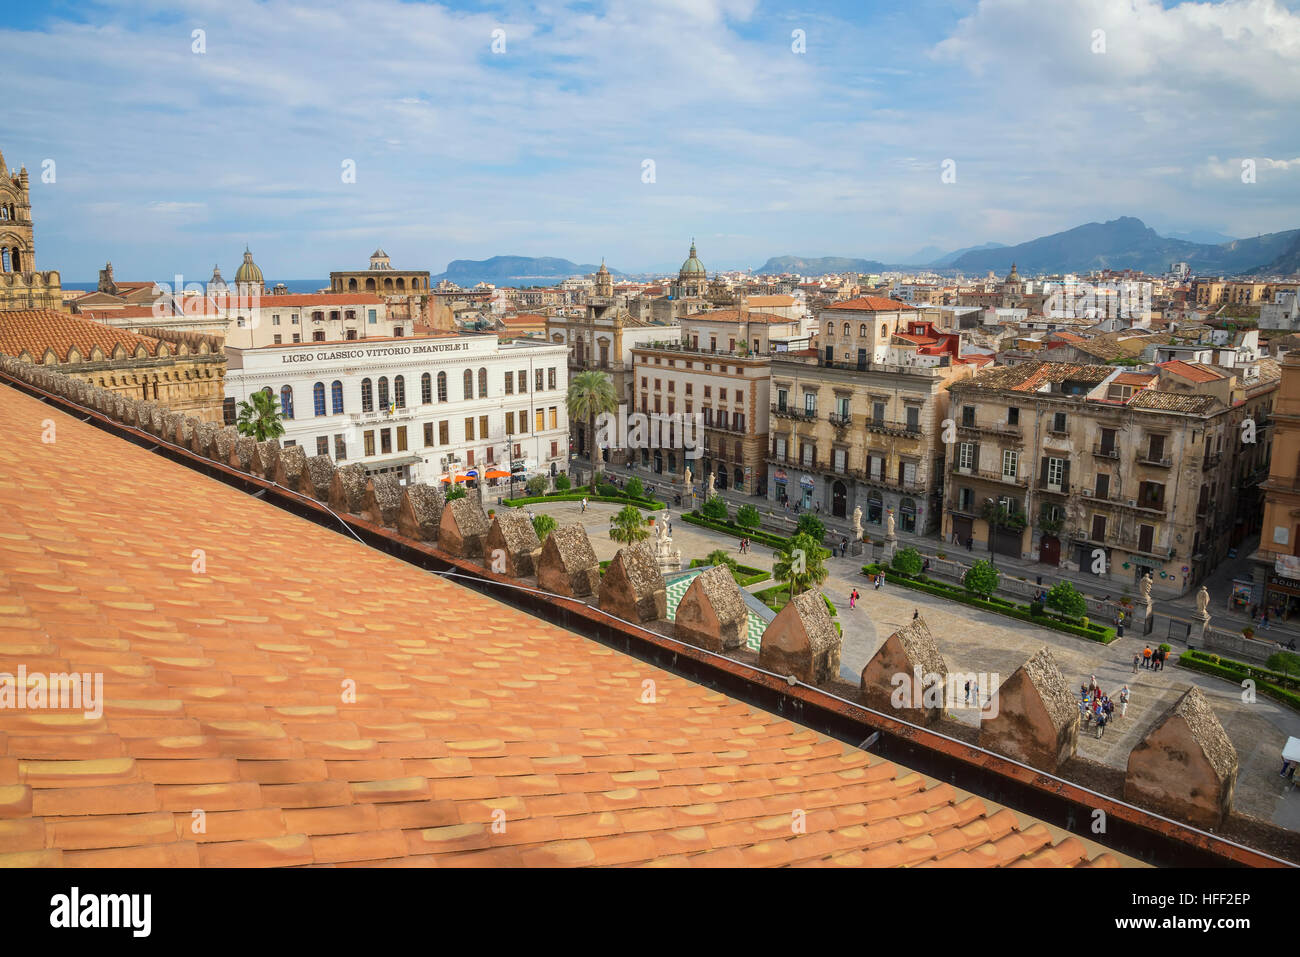 Palermo Cathedral square, Palermo, Sicily, Italy, Europe, - Stock Image